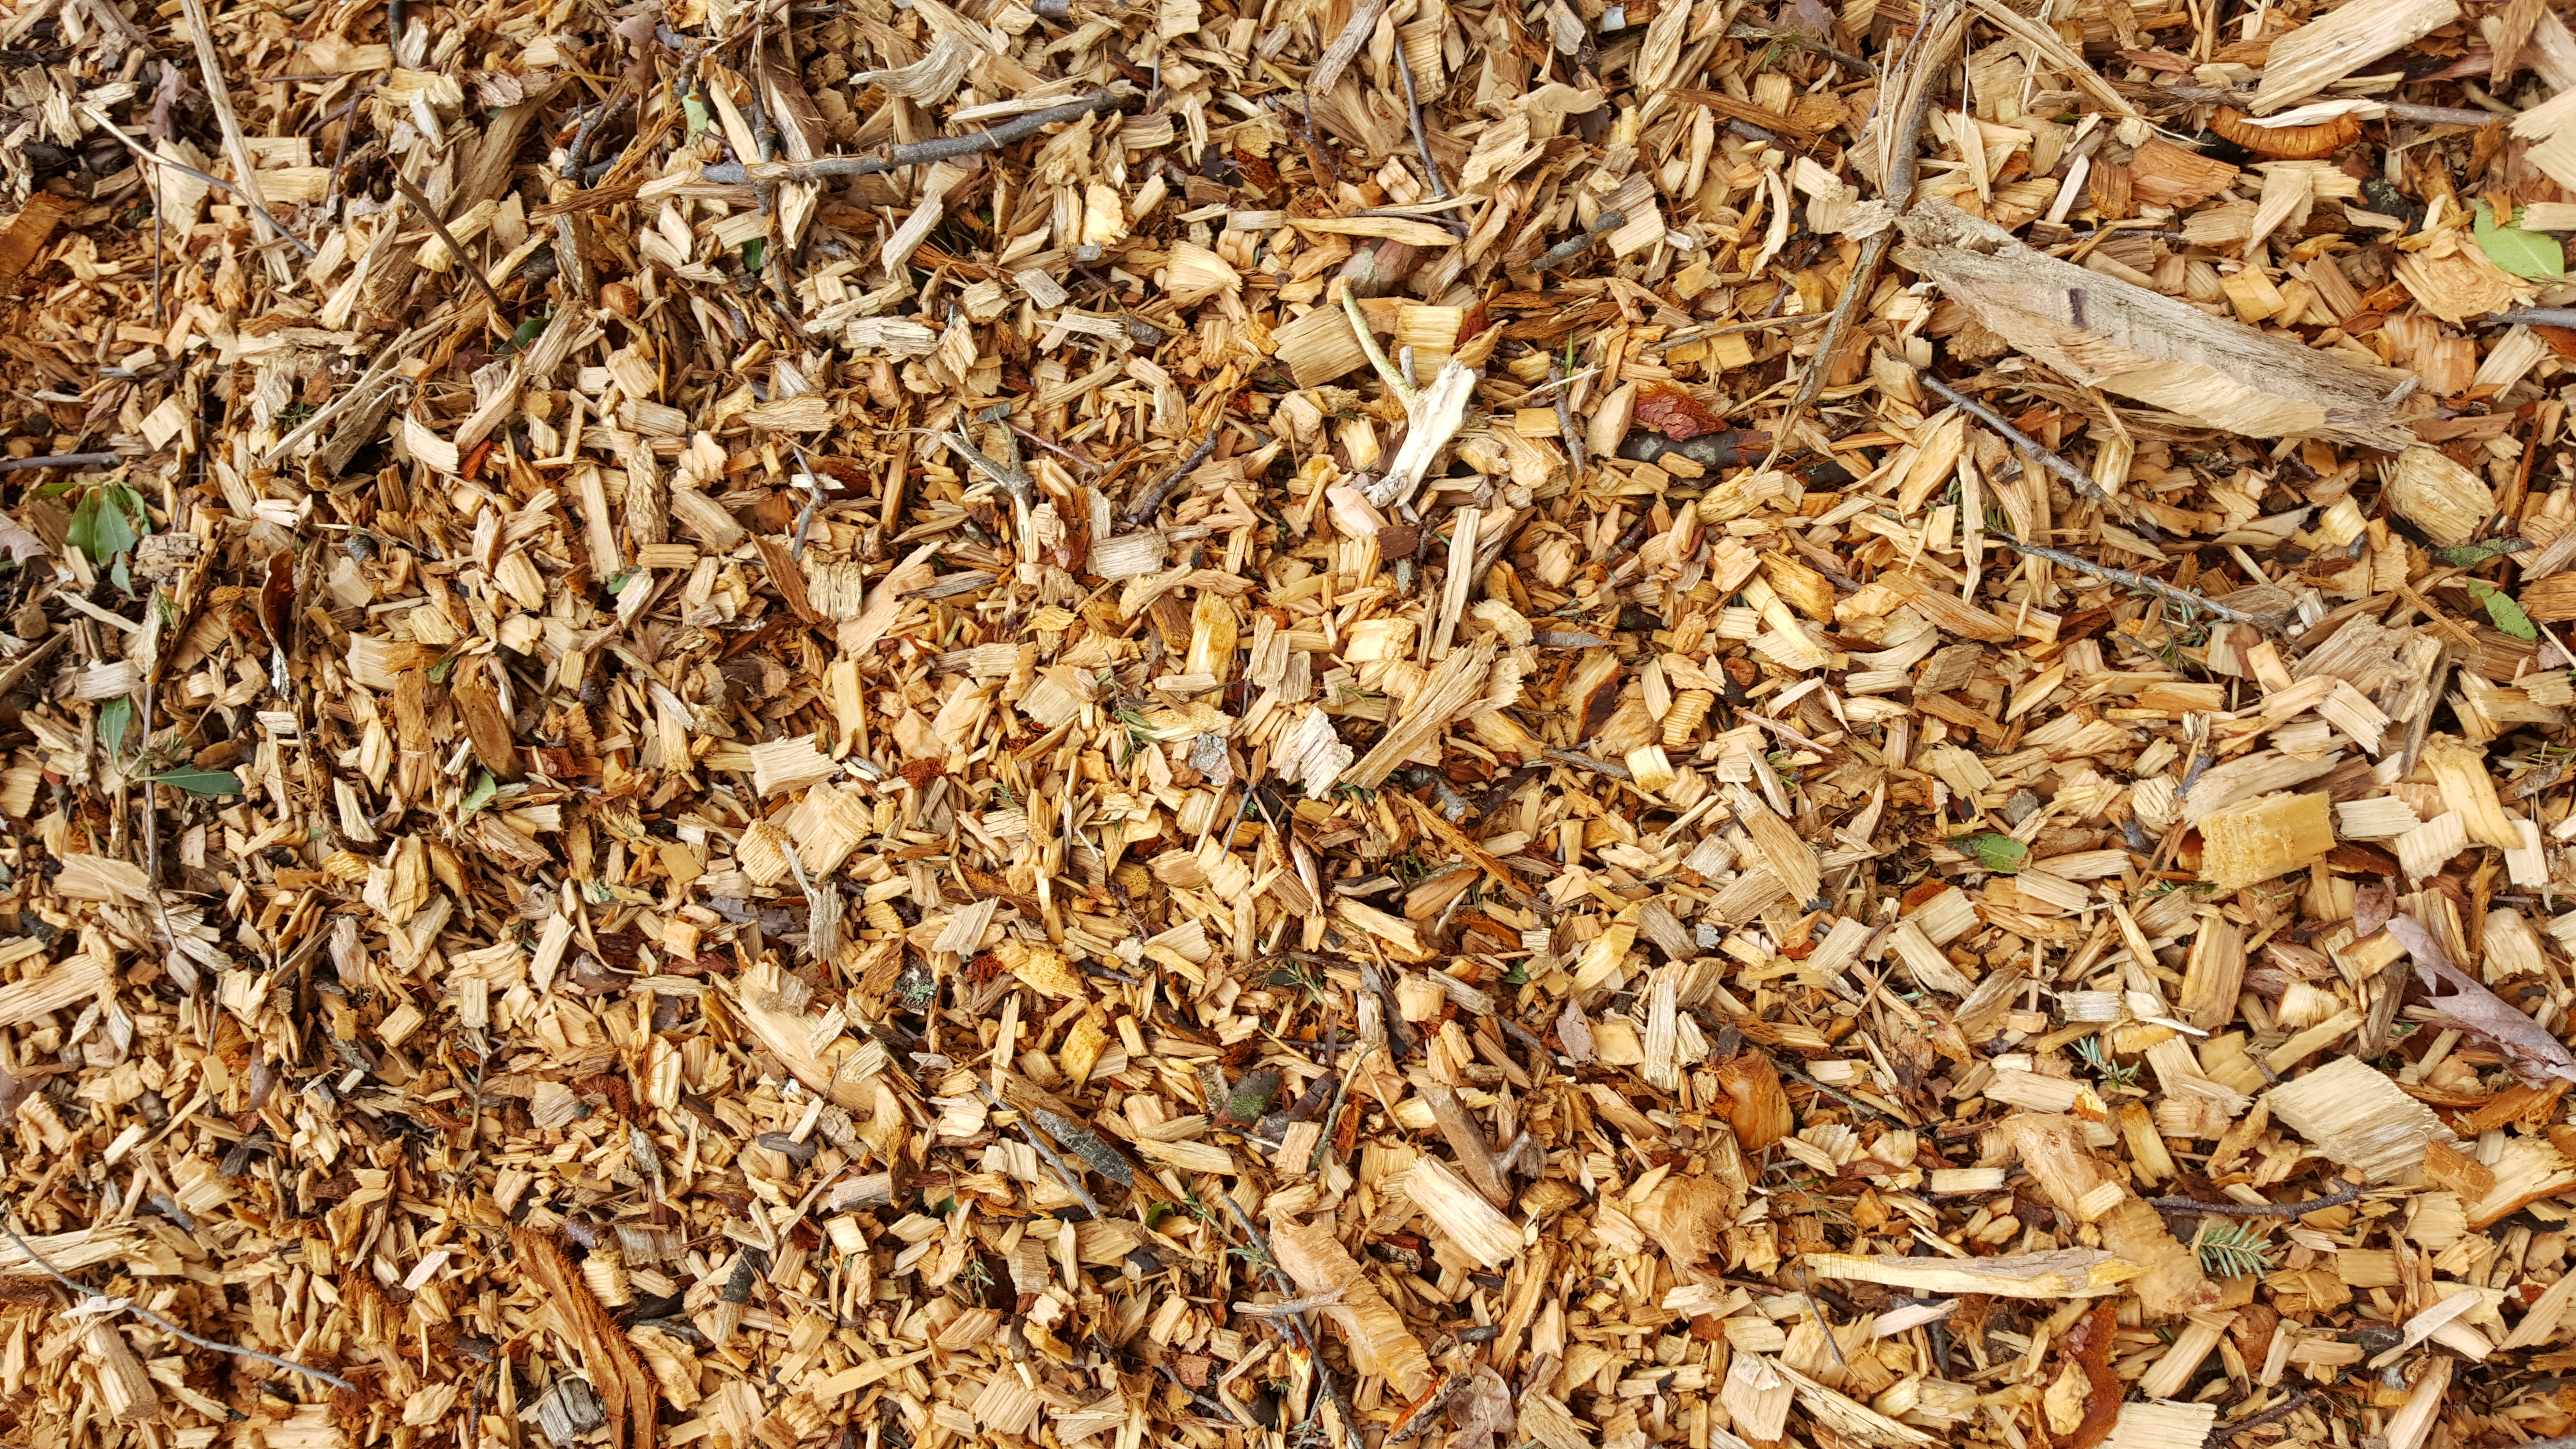 Wood chips fresh locally cut natural wood chips. Light in color.